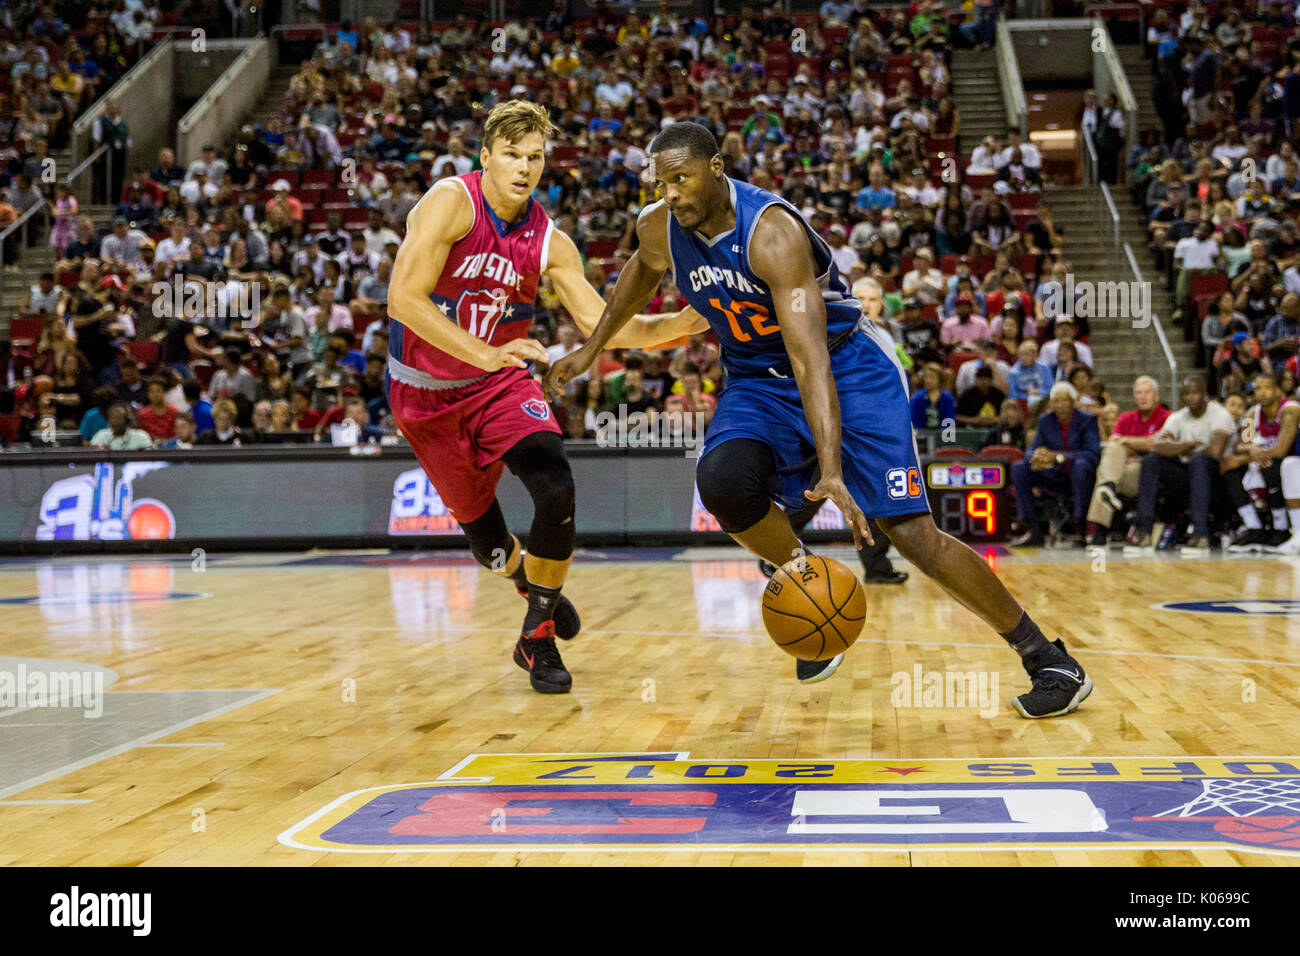 b8523f626a5 Al Thornton  12 3s Company drives ball forward against Lou Amundson  17 Tri-